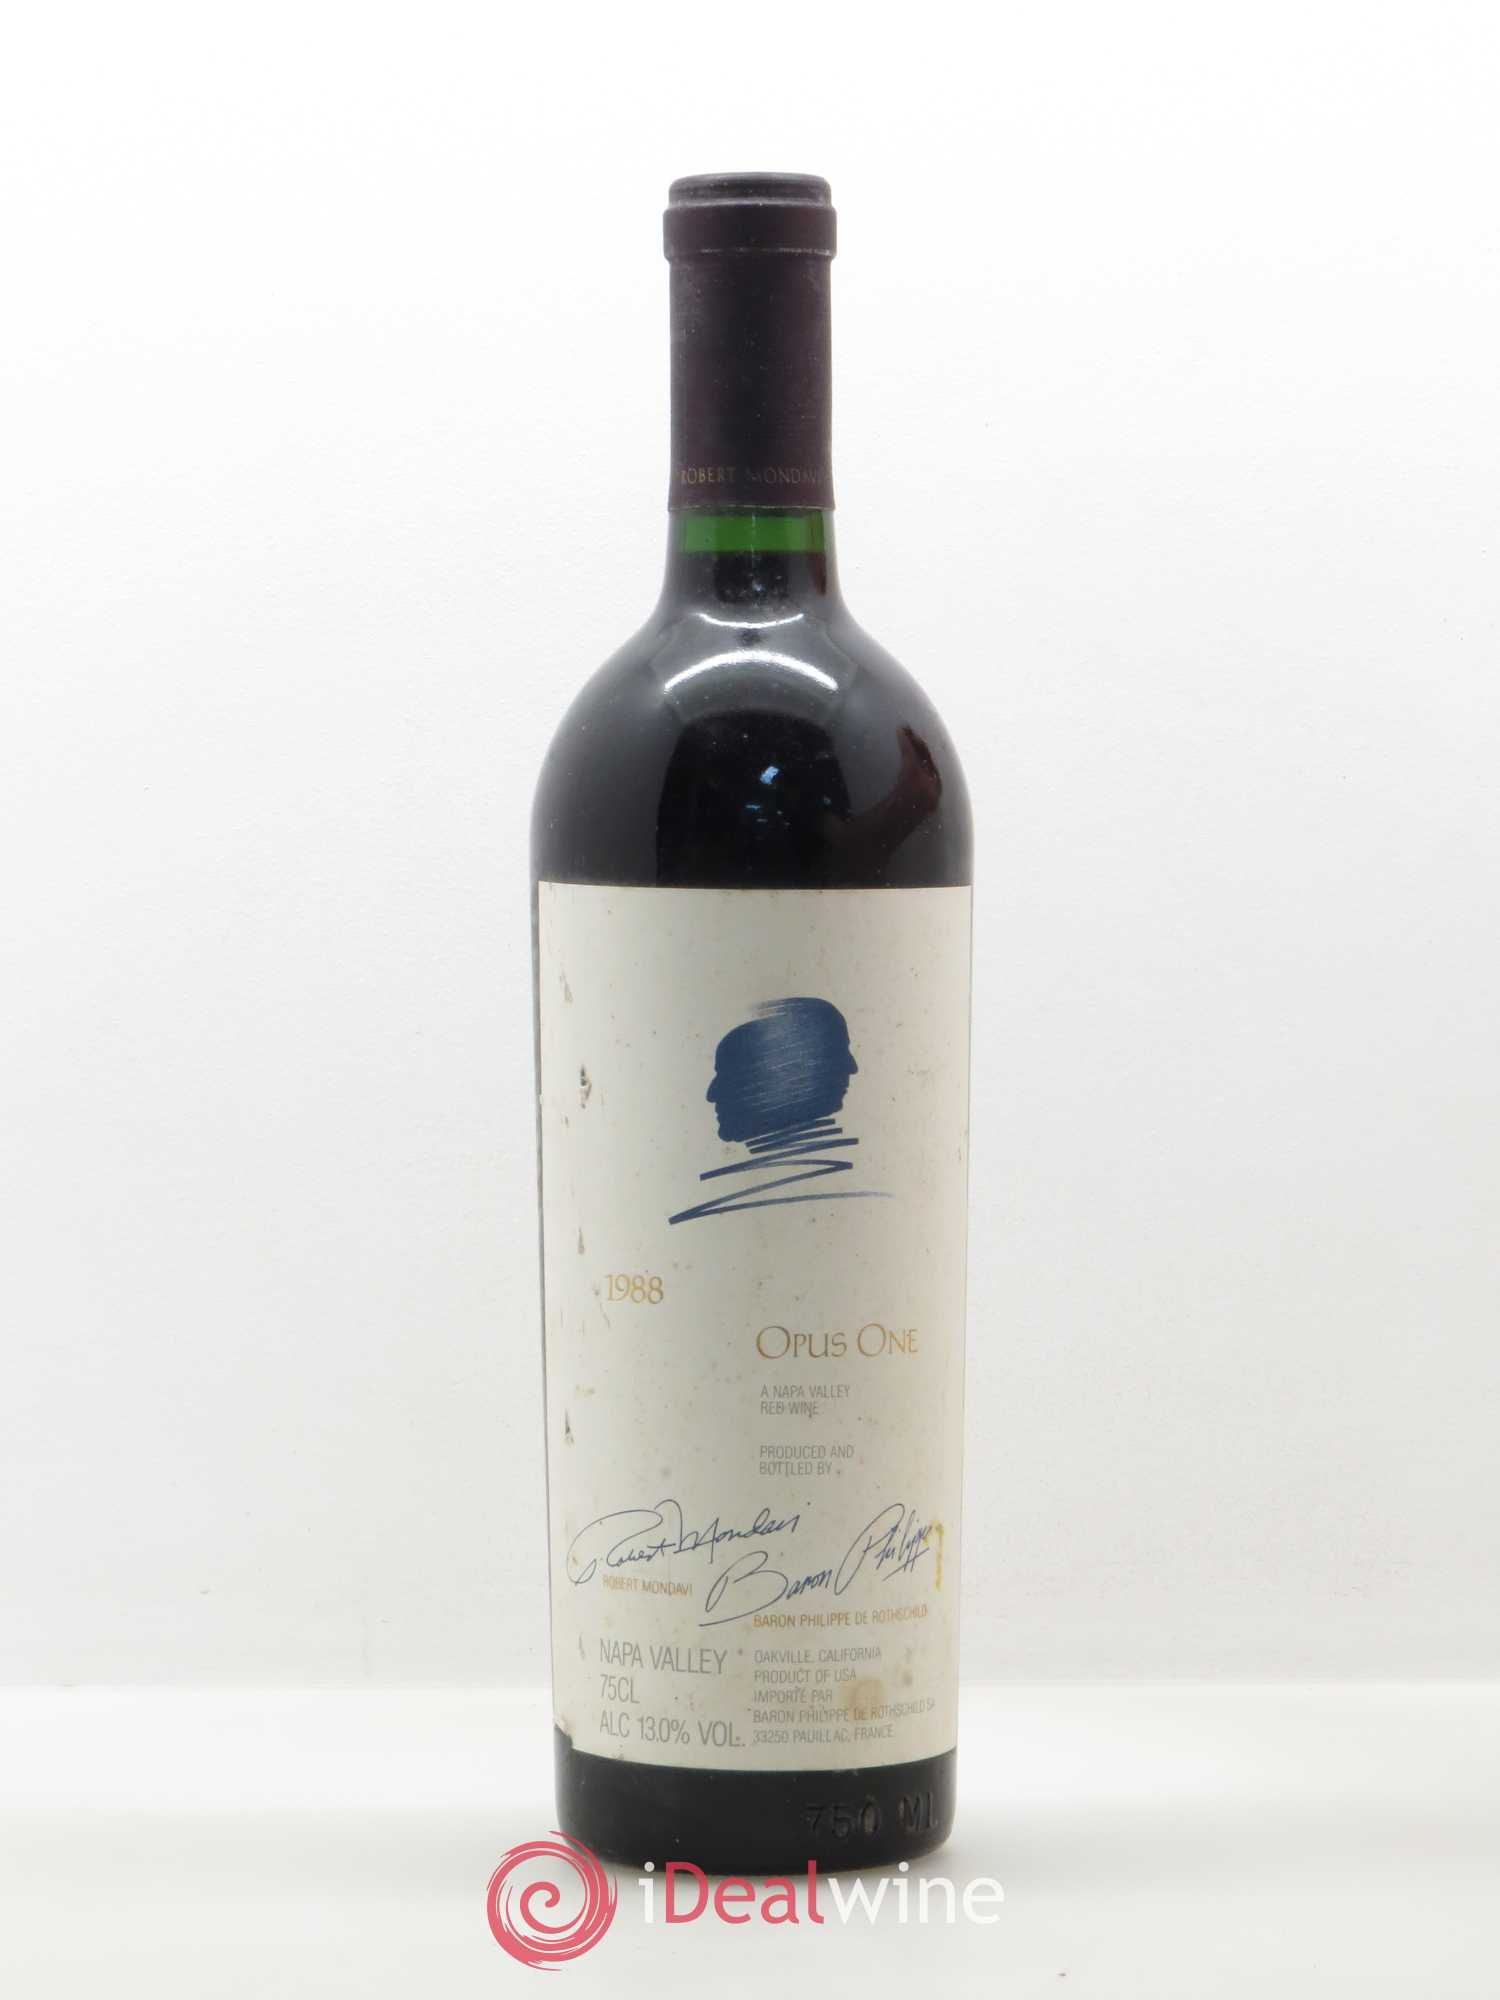 Oakville Opus One Constellation Brands Baron Philippe de Rothschild  1988 - Lot de 1 Bouteille